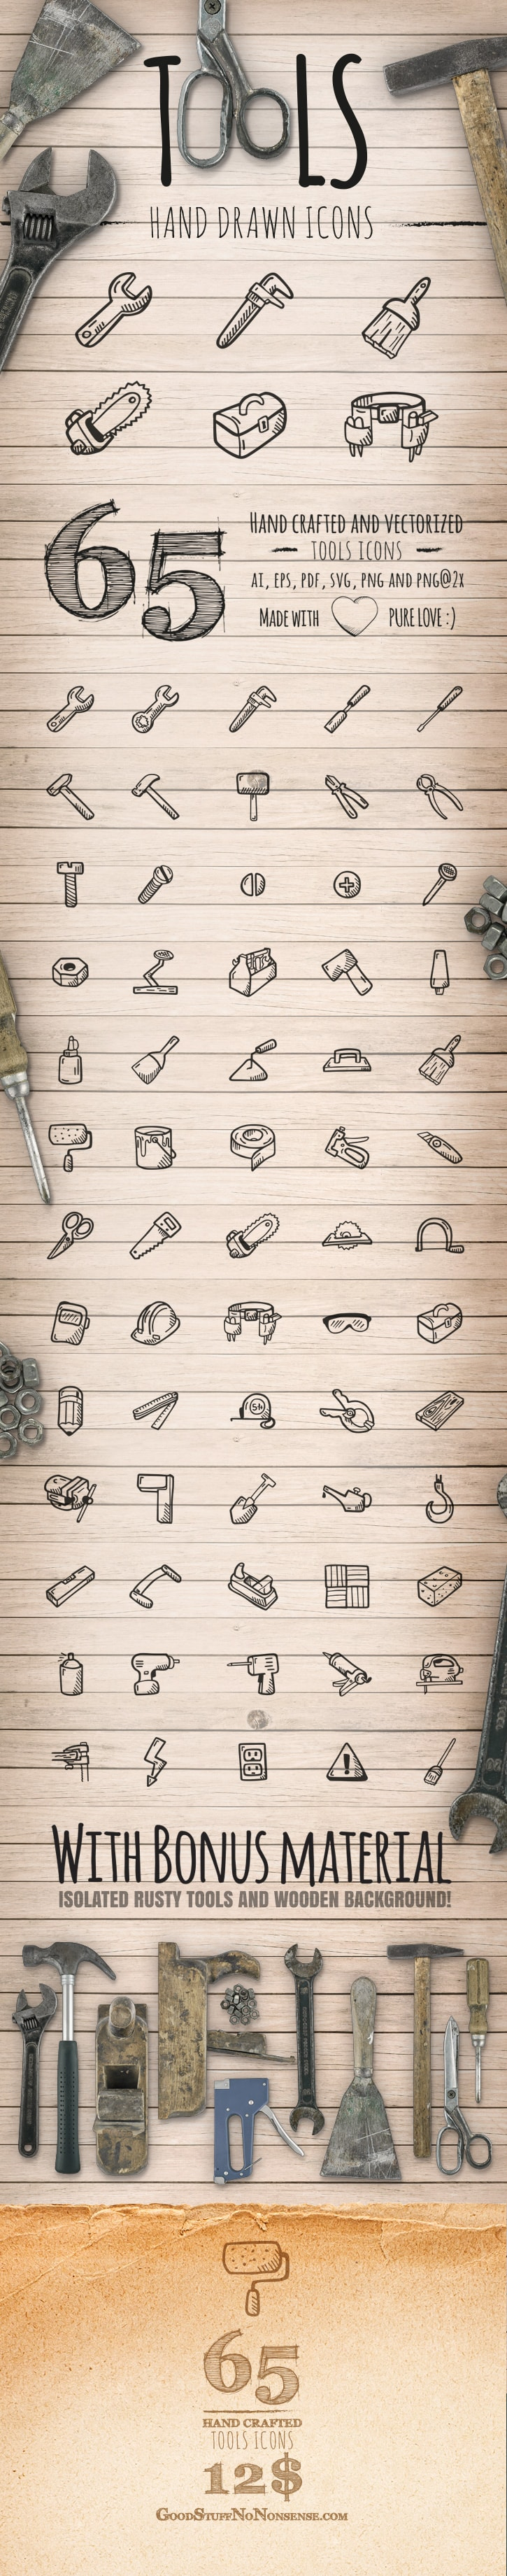 Tools Icons - Good Stuff No Nonsense